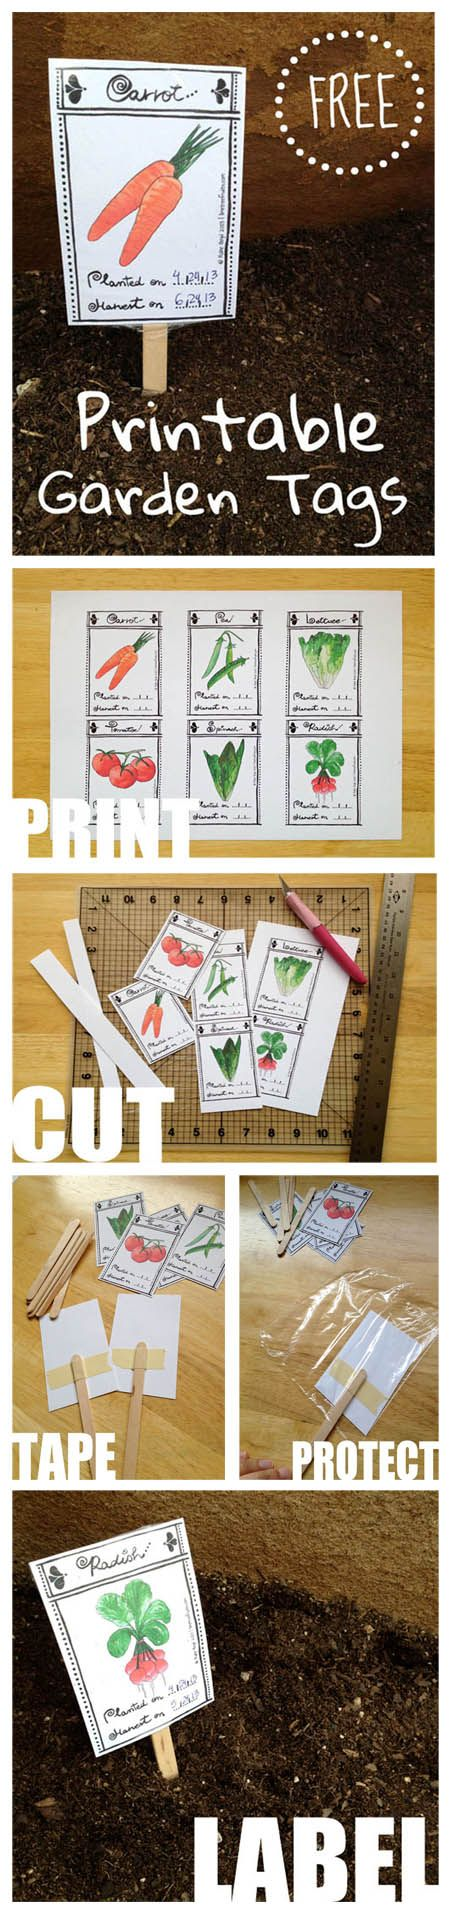 http://www.limetreefruits.com/garden-labels/ FREE Printable Garden Tags